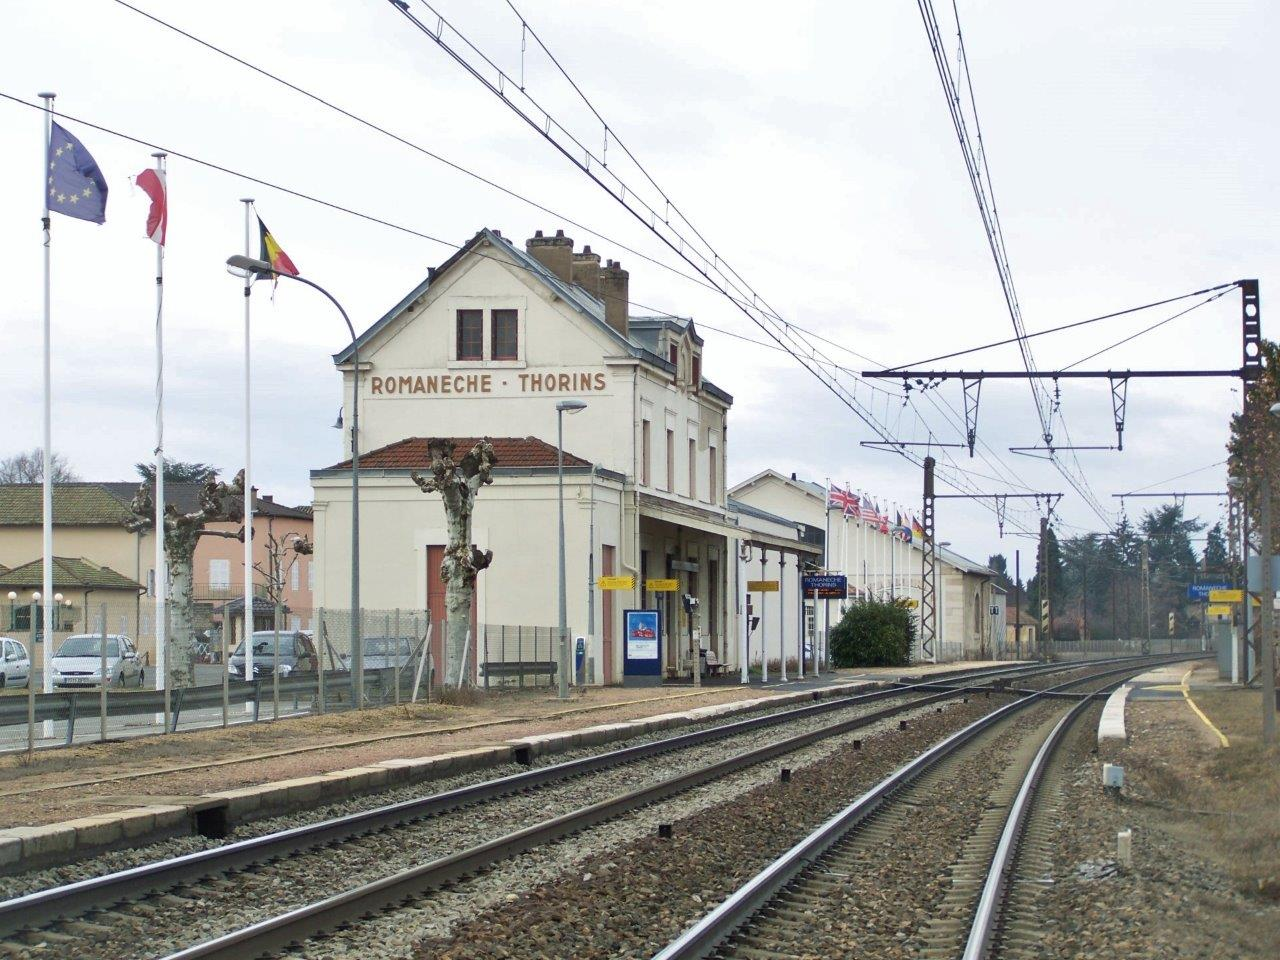 gare-de-romaneche-thorins-train-station